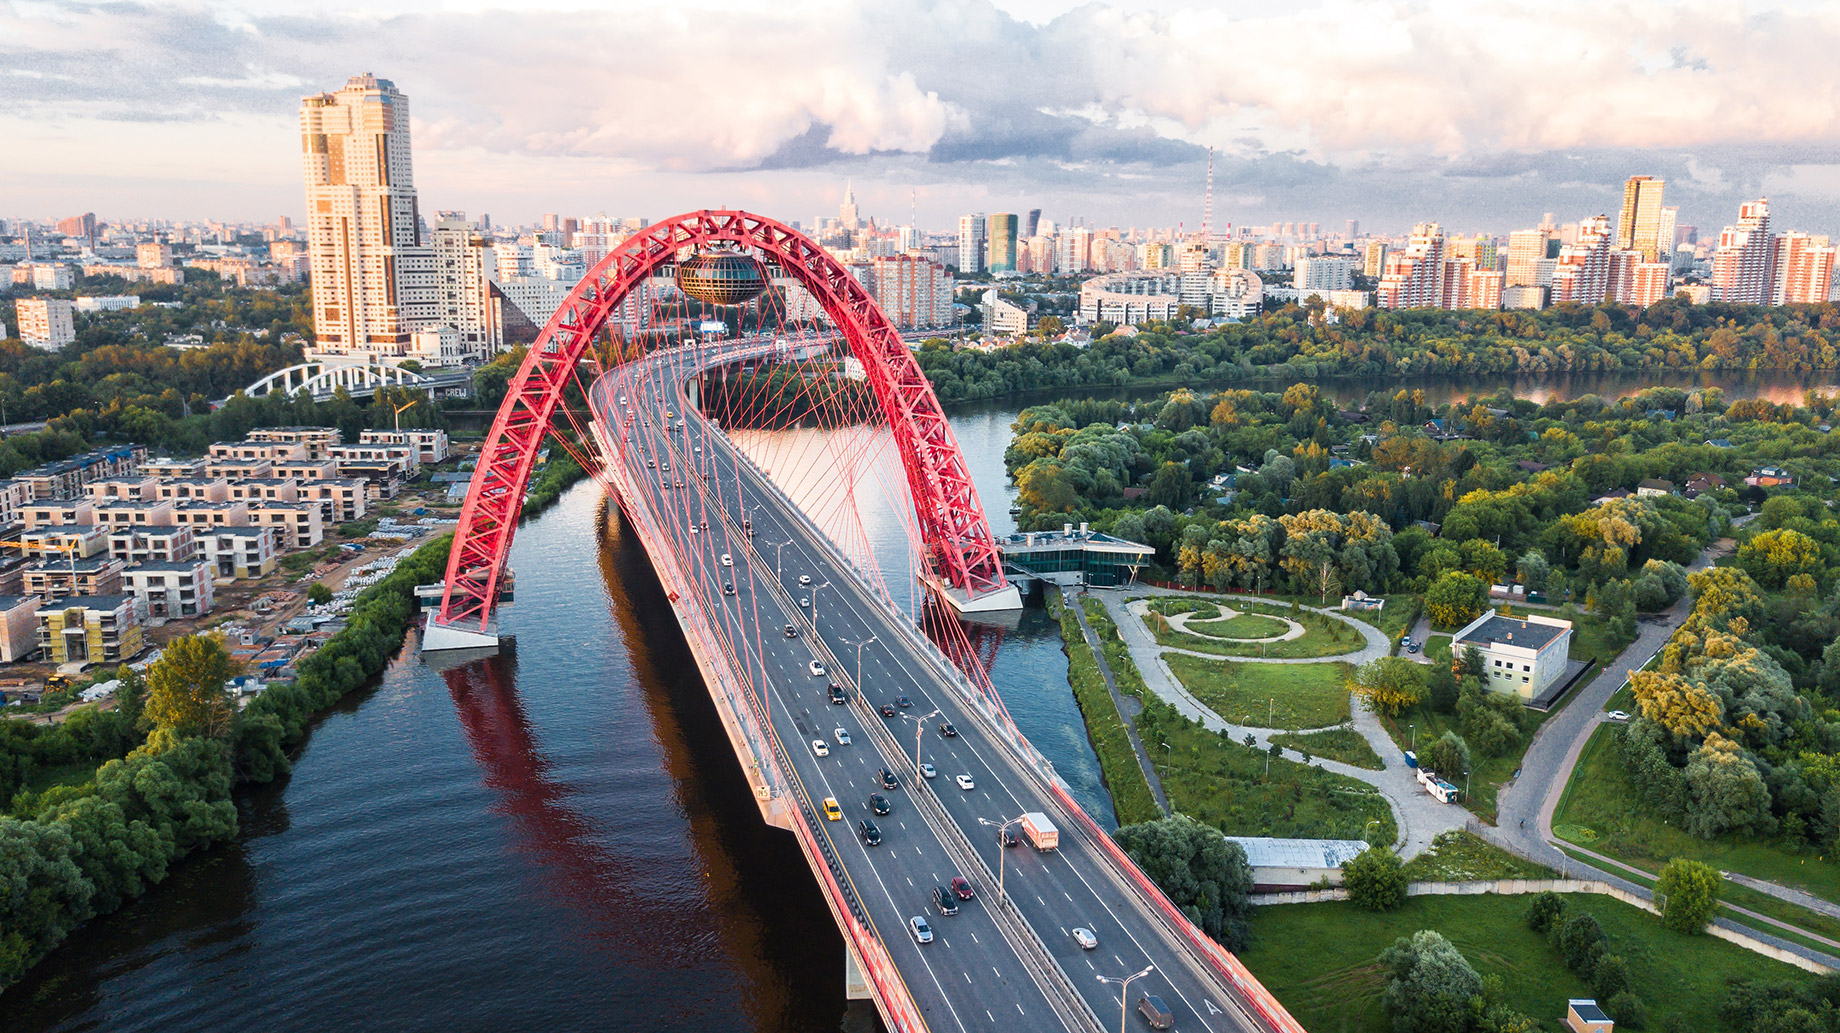 Moscow, Russia - The Most Expensive Real Estate Cities in the World